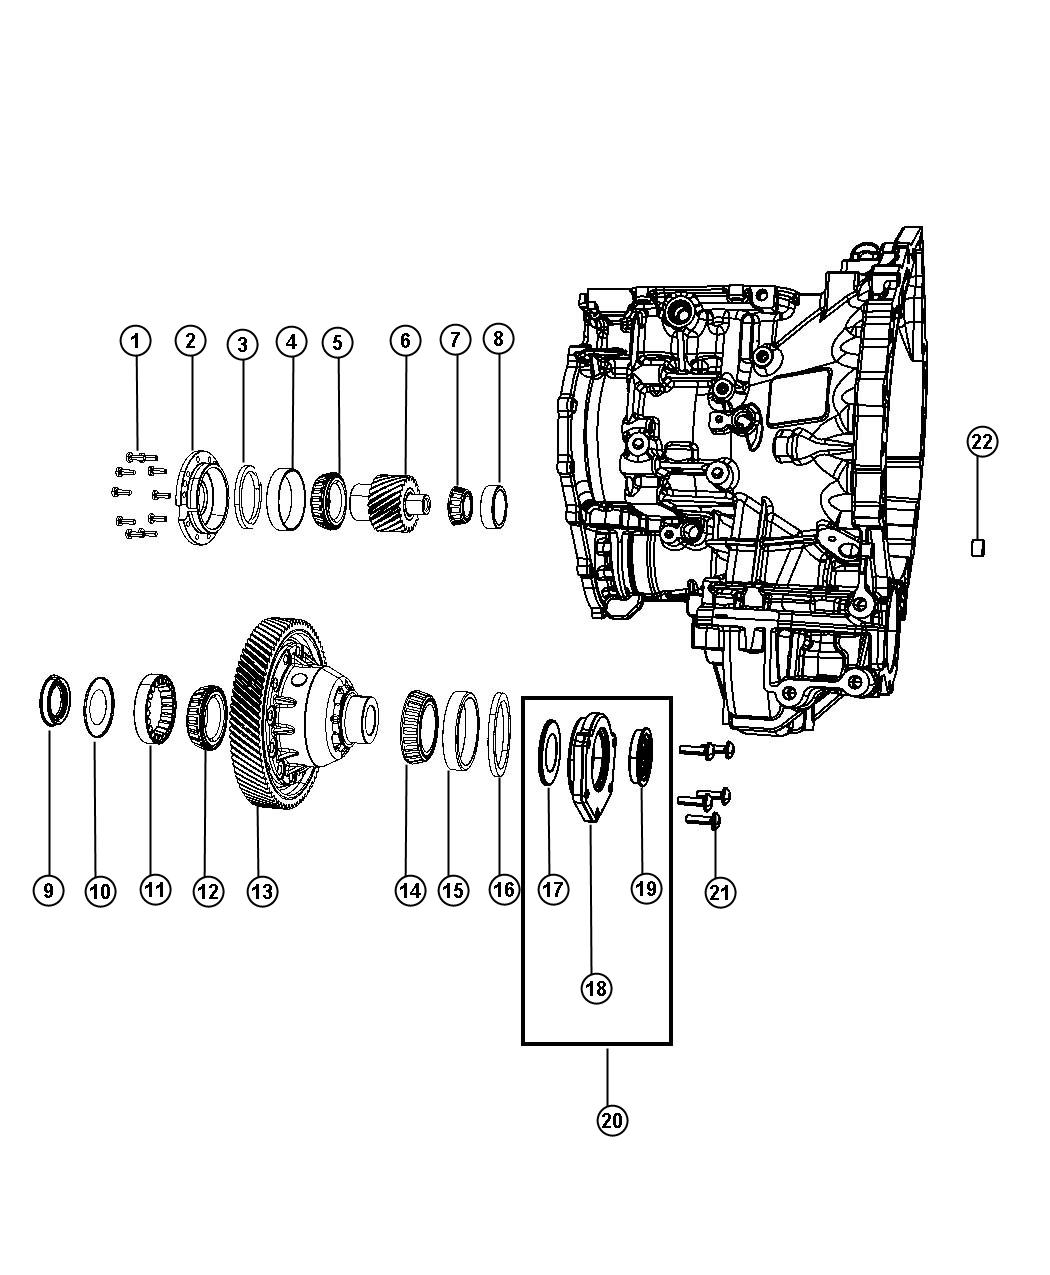 Diagram Output Pinion And Differential. for your 2018 Chrysler Pacifica Touring Plus